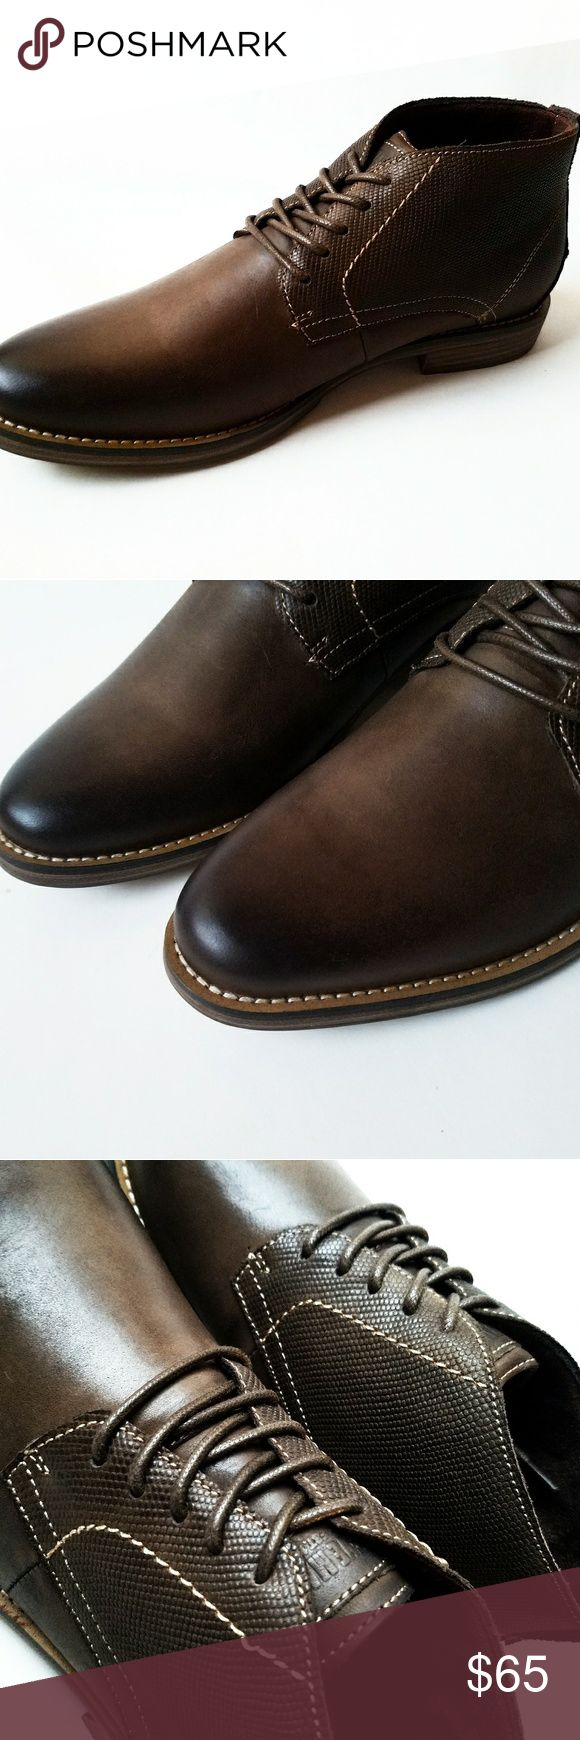 Steve Madden Brown Leather Ankle Bootie - Man Made - Imported - Synthetic sole - Side gore for easy entry Steve Madden Shoes Boots